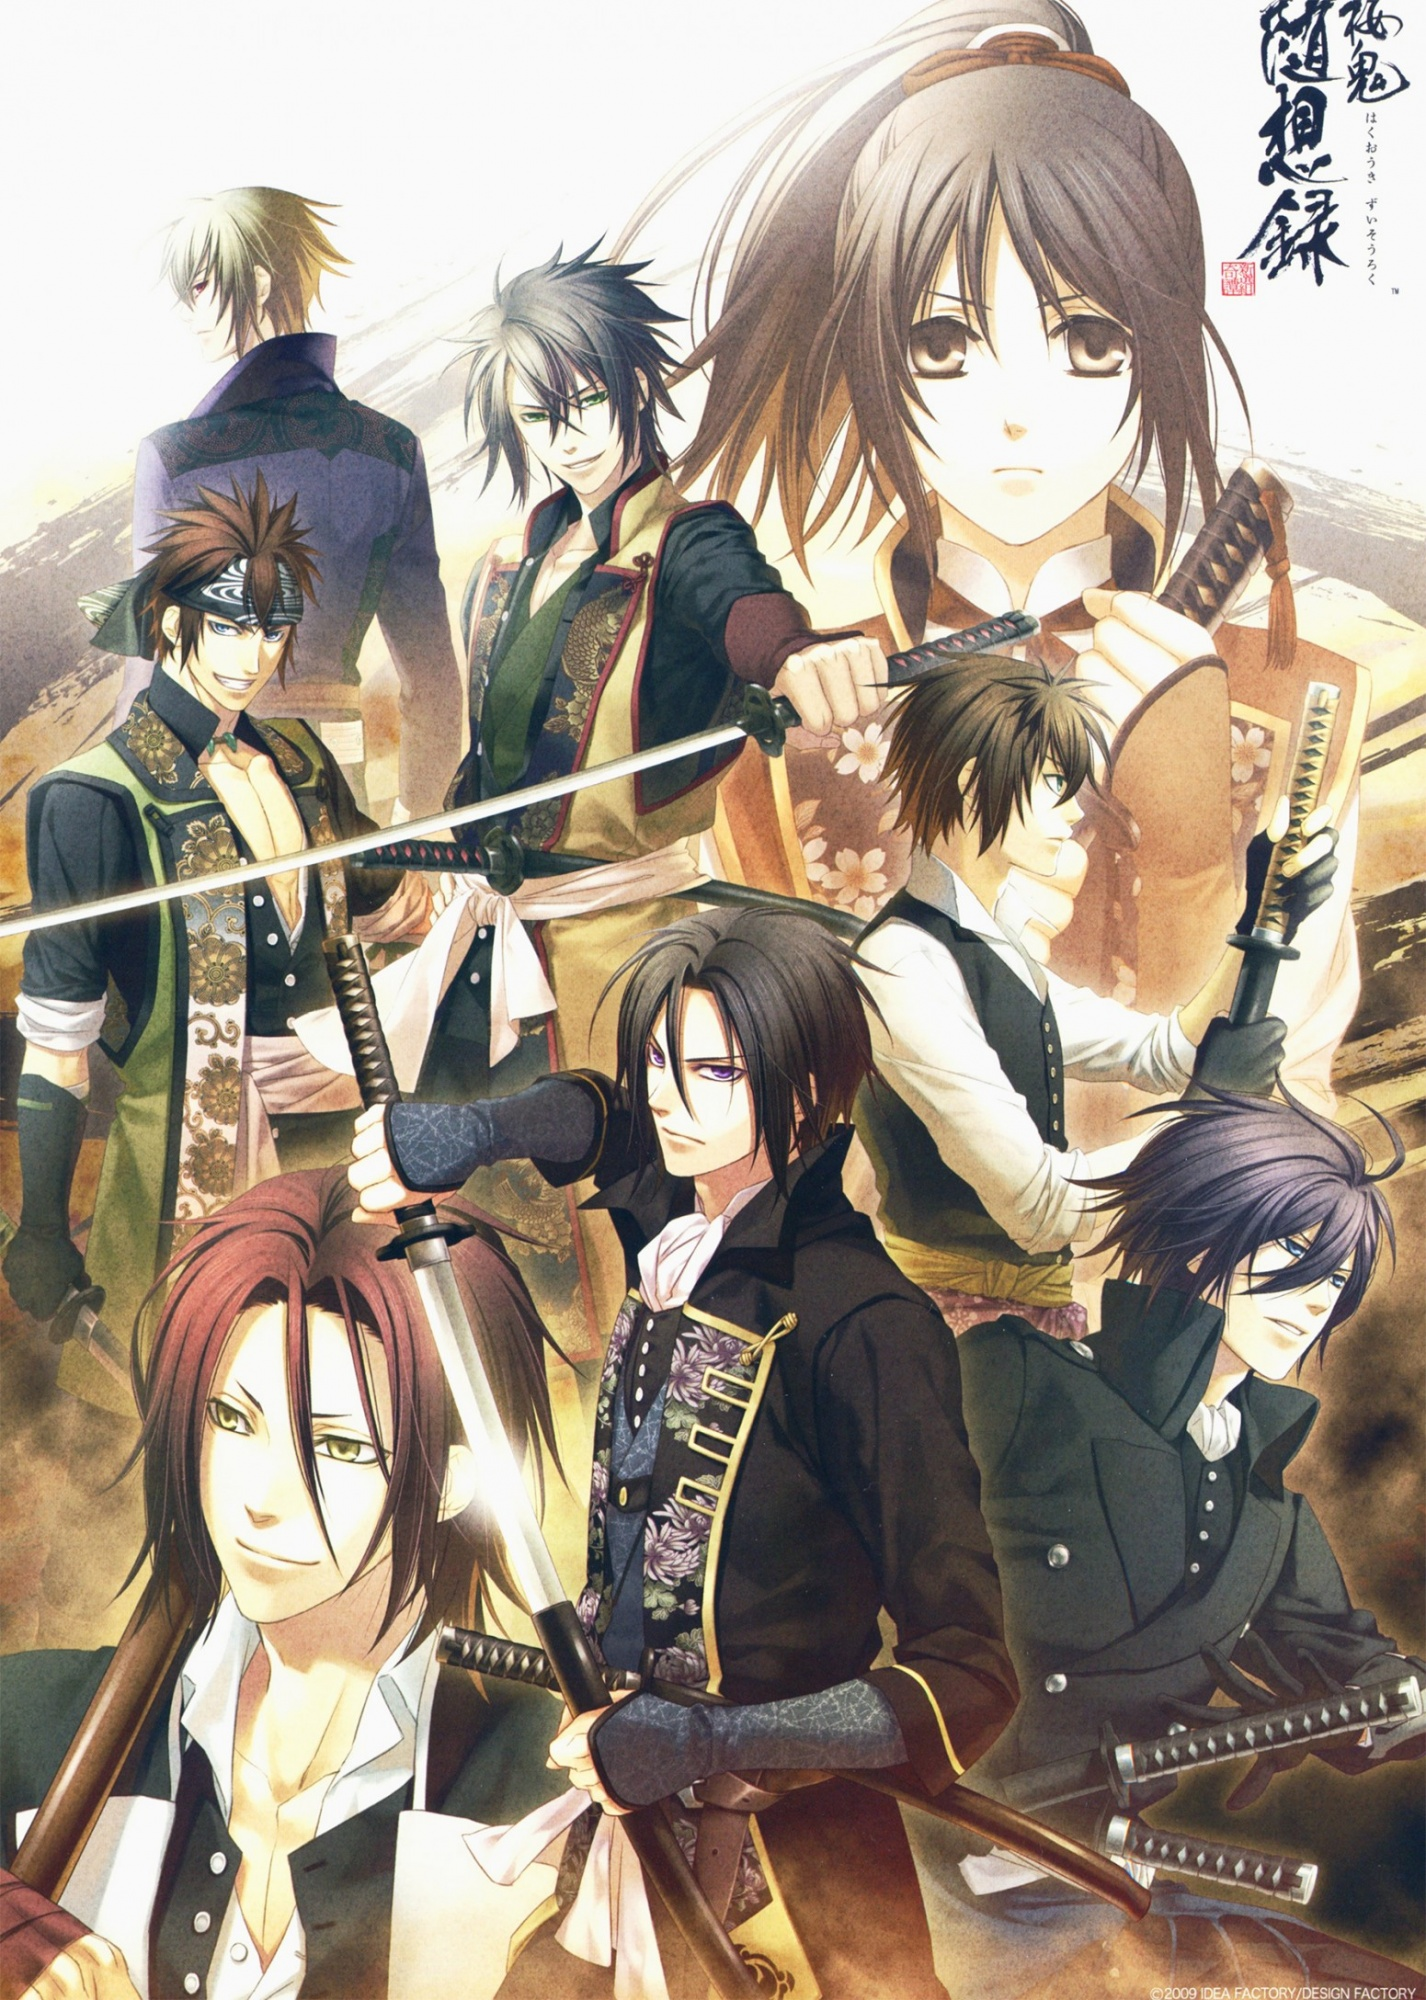 HQ Hakuouki Shinsengumi Kitan Wallpapers | File 983.94Kb